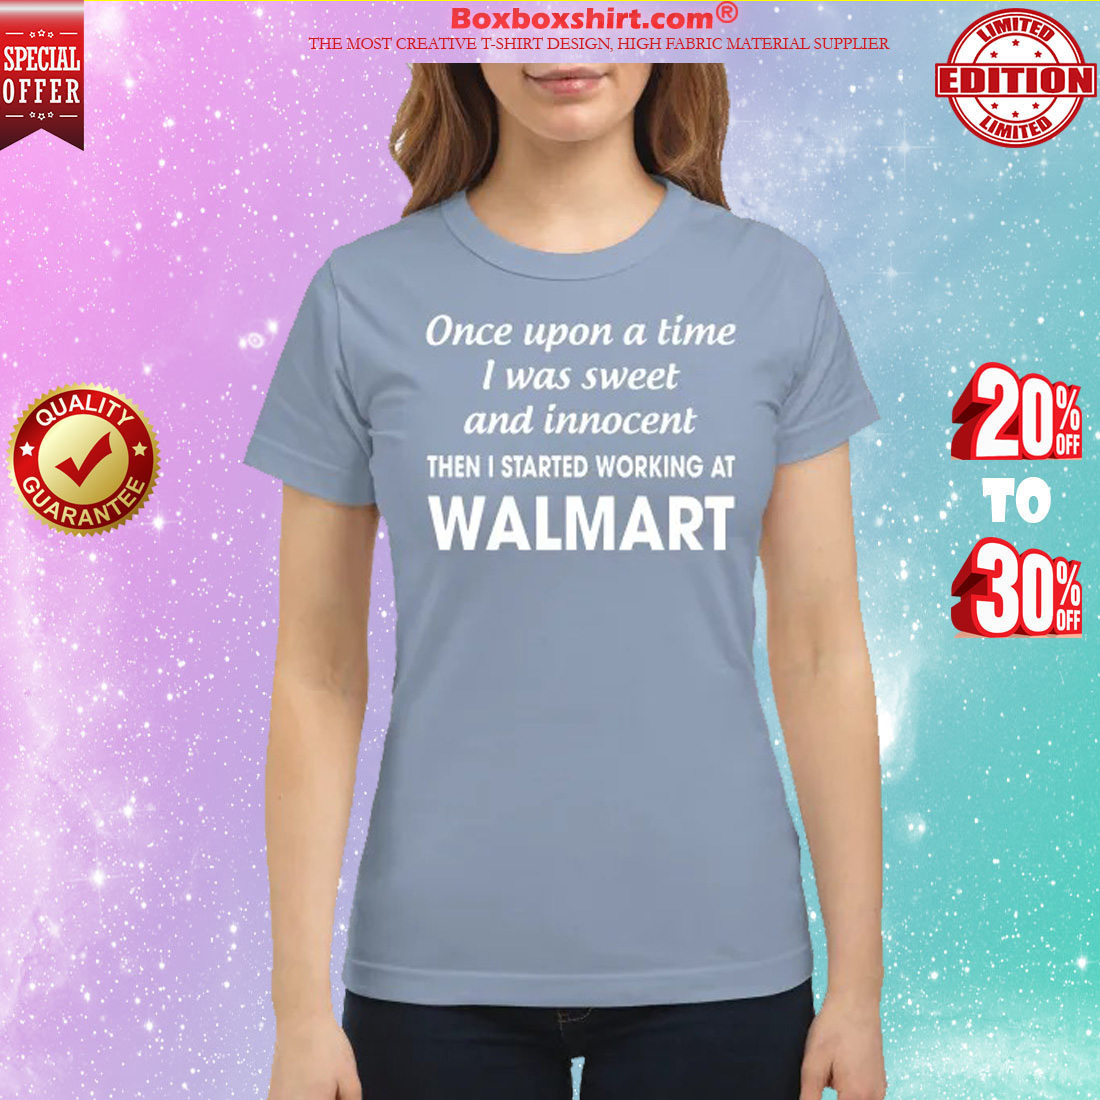 Once upon a time I was sweet and innocent then I started working Walmart classic shirt